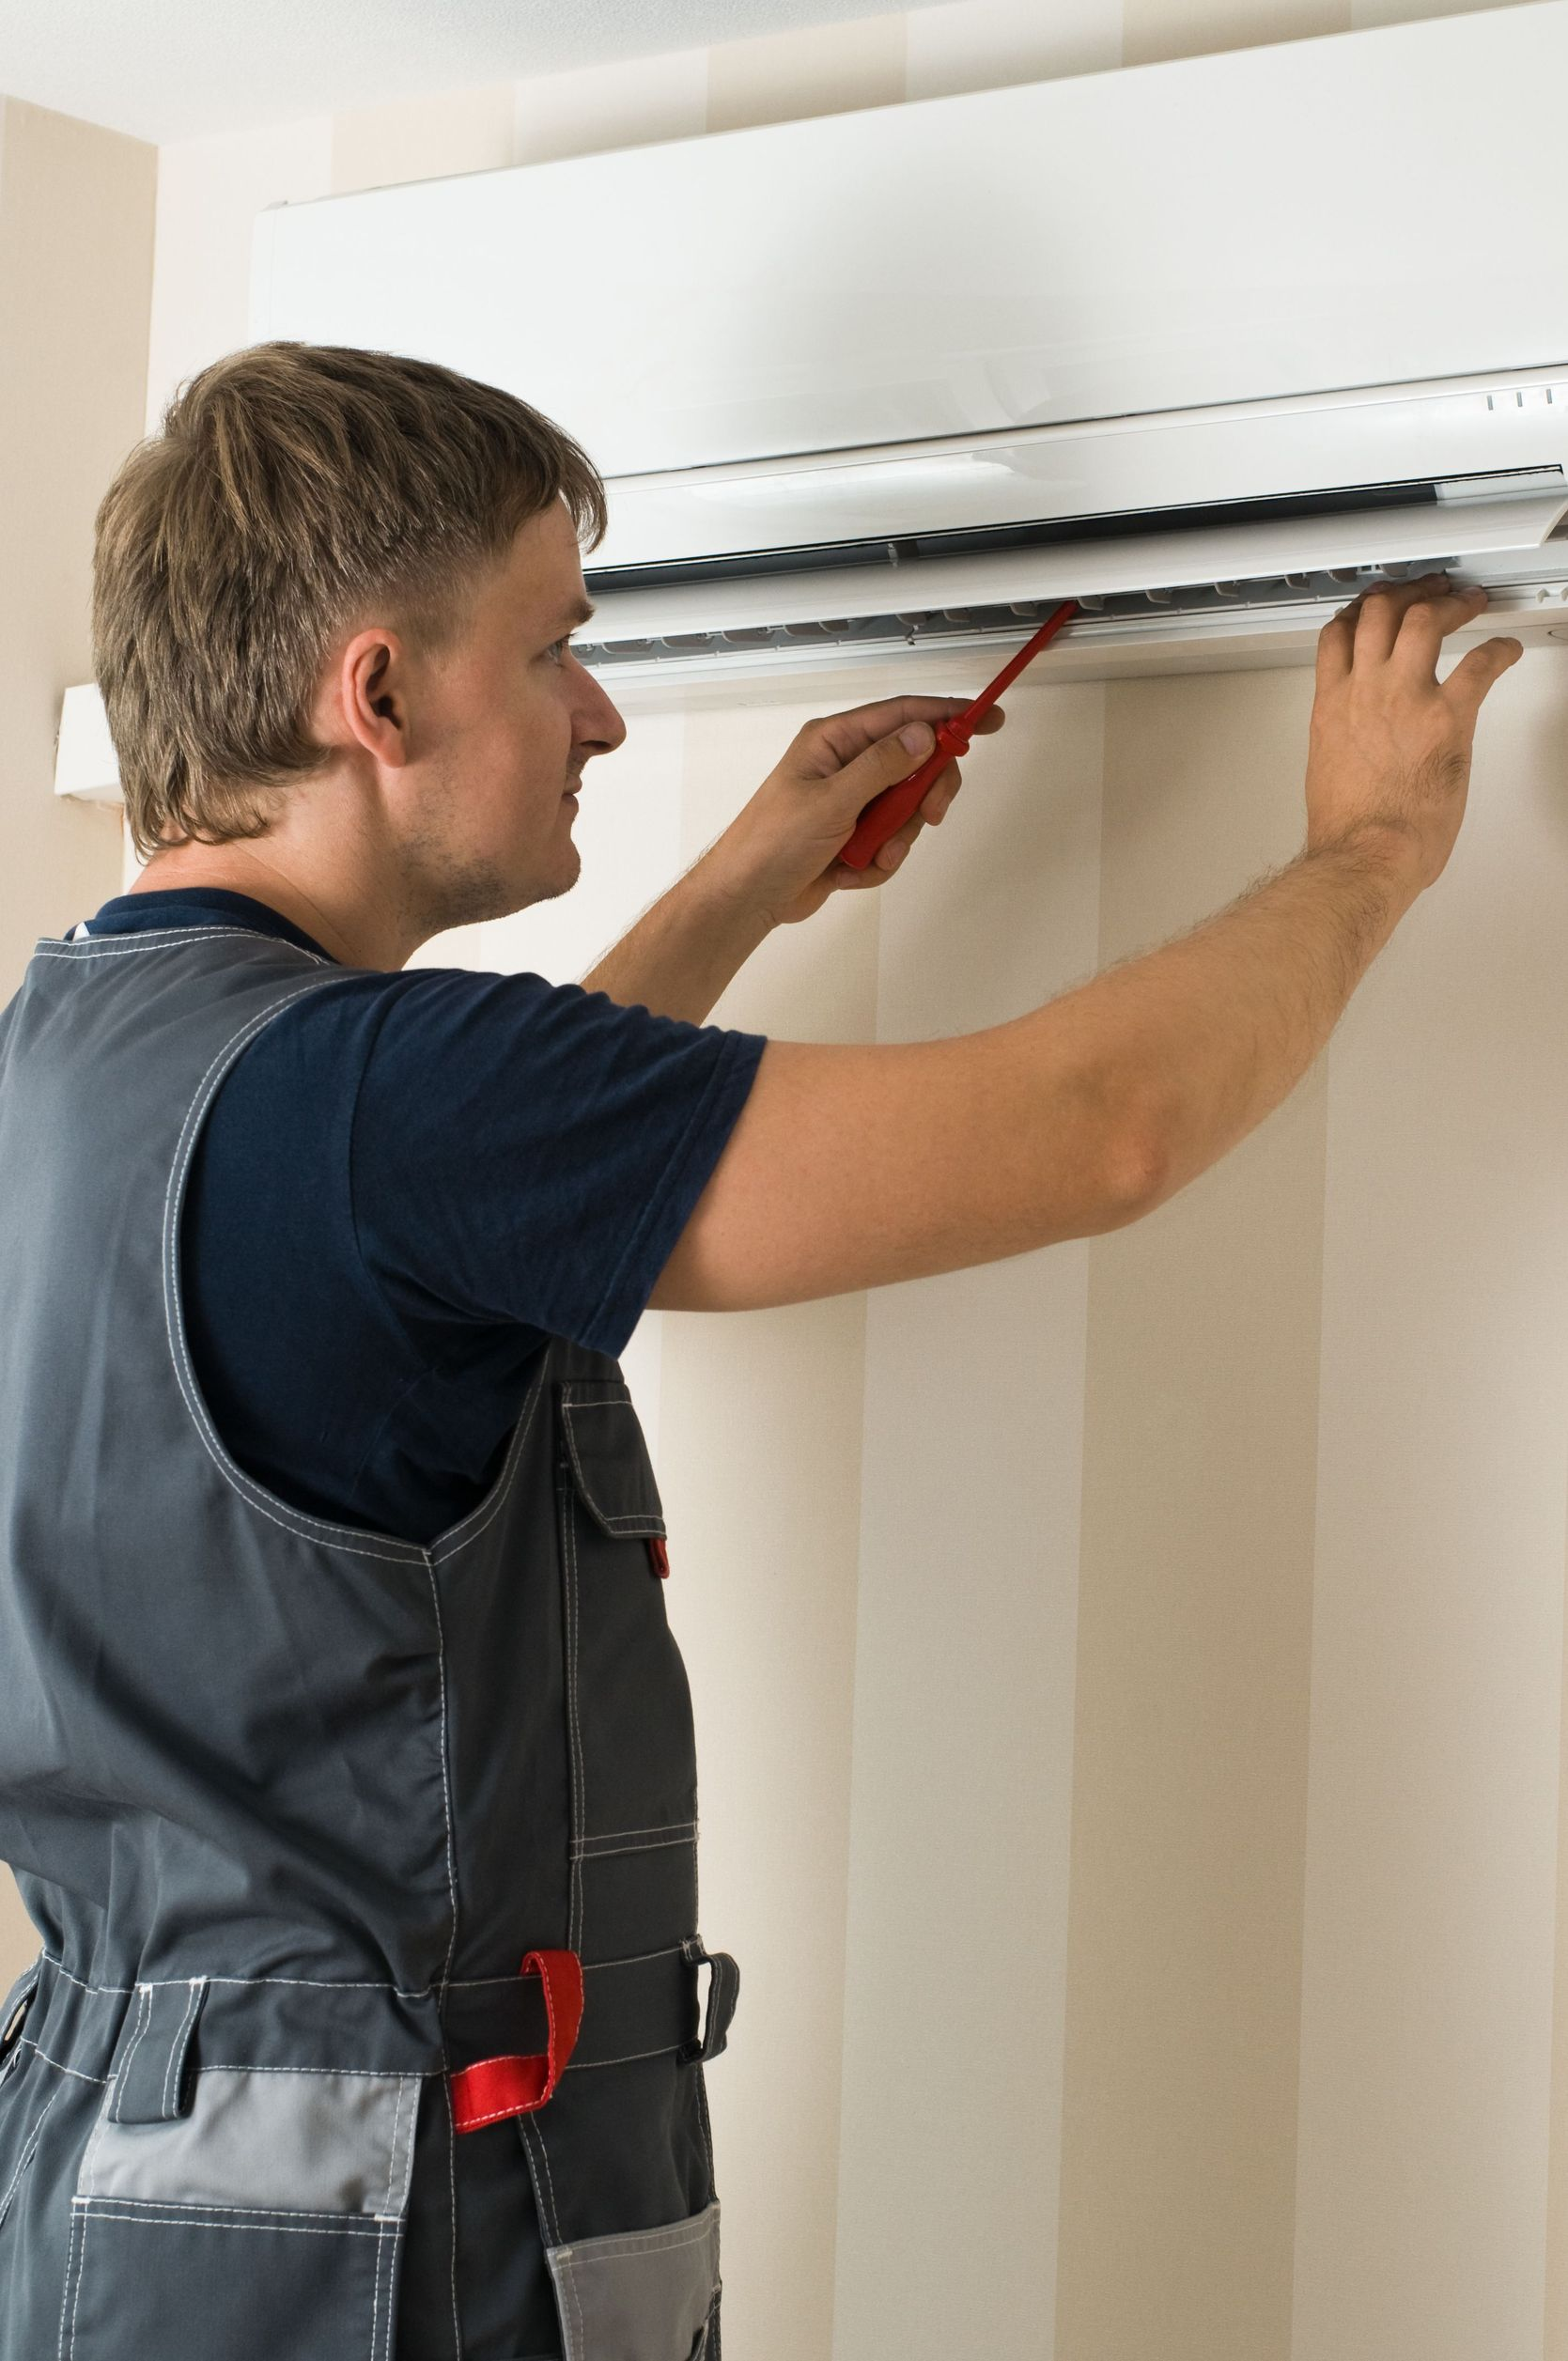 Important Reasons to Have Your Air Conditioner Inspected Annually